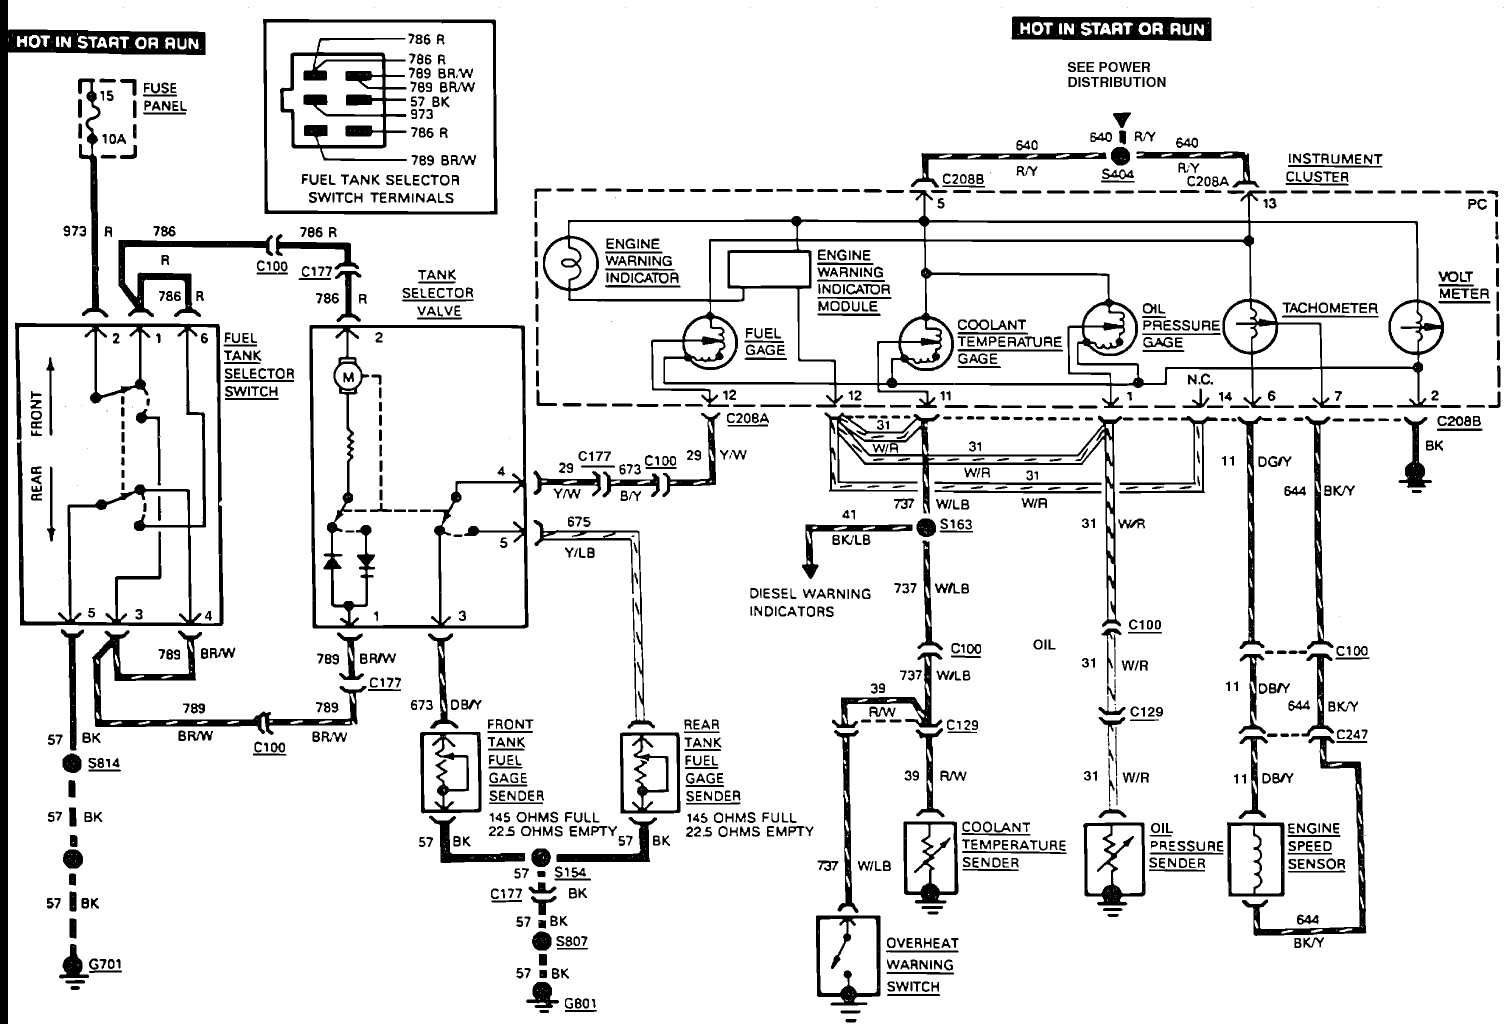 2005 ford e150 wiring diagram 1985 ford e150 wiring diagram ford e350 wiring diagram | free wiring diagram